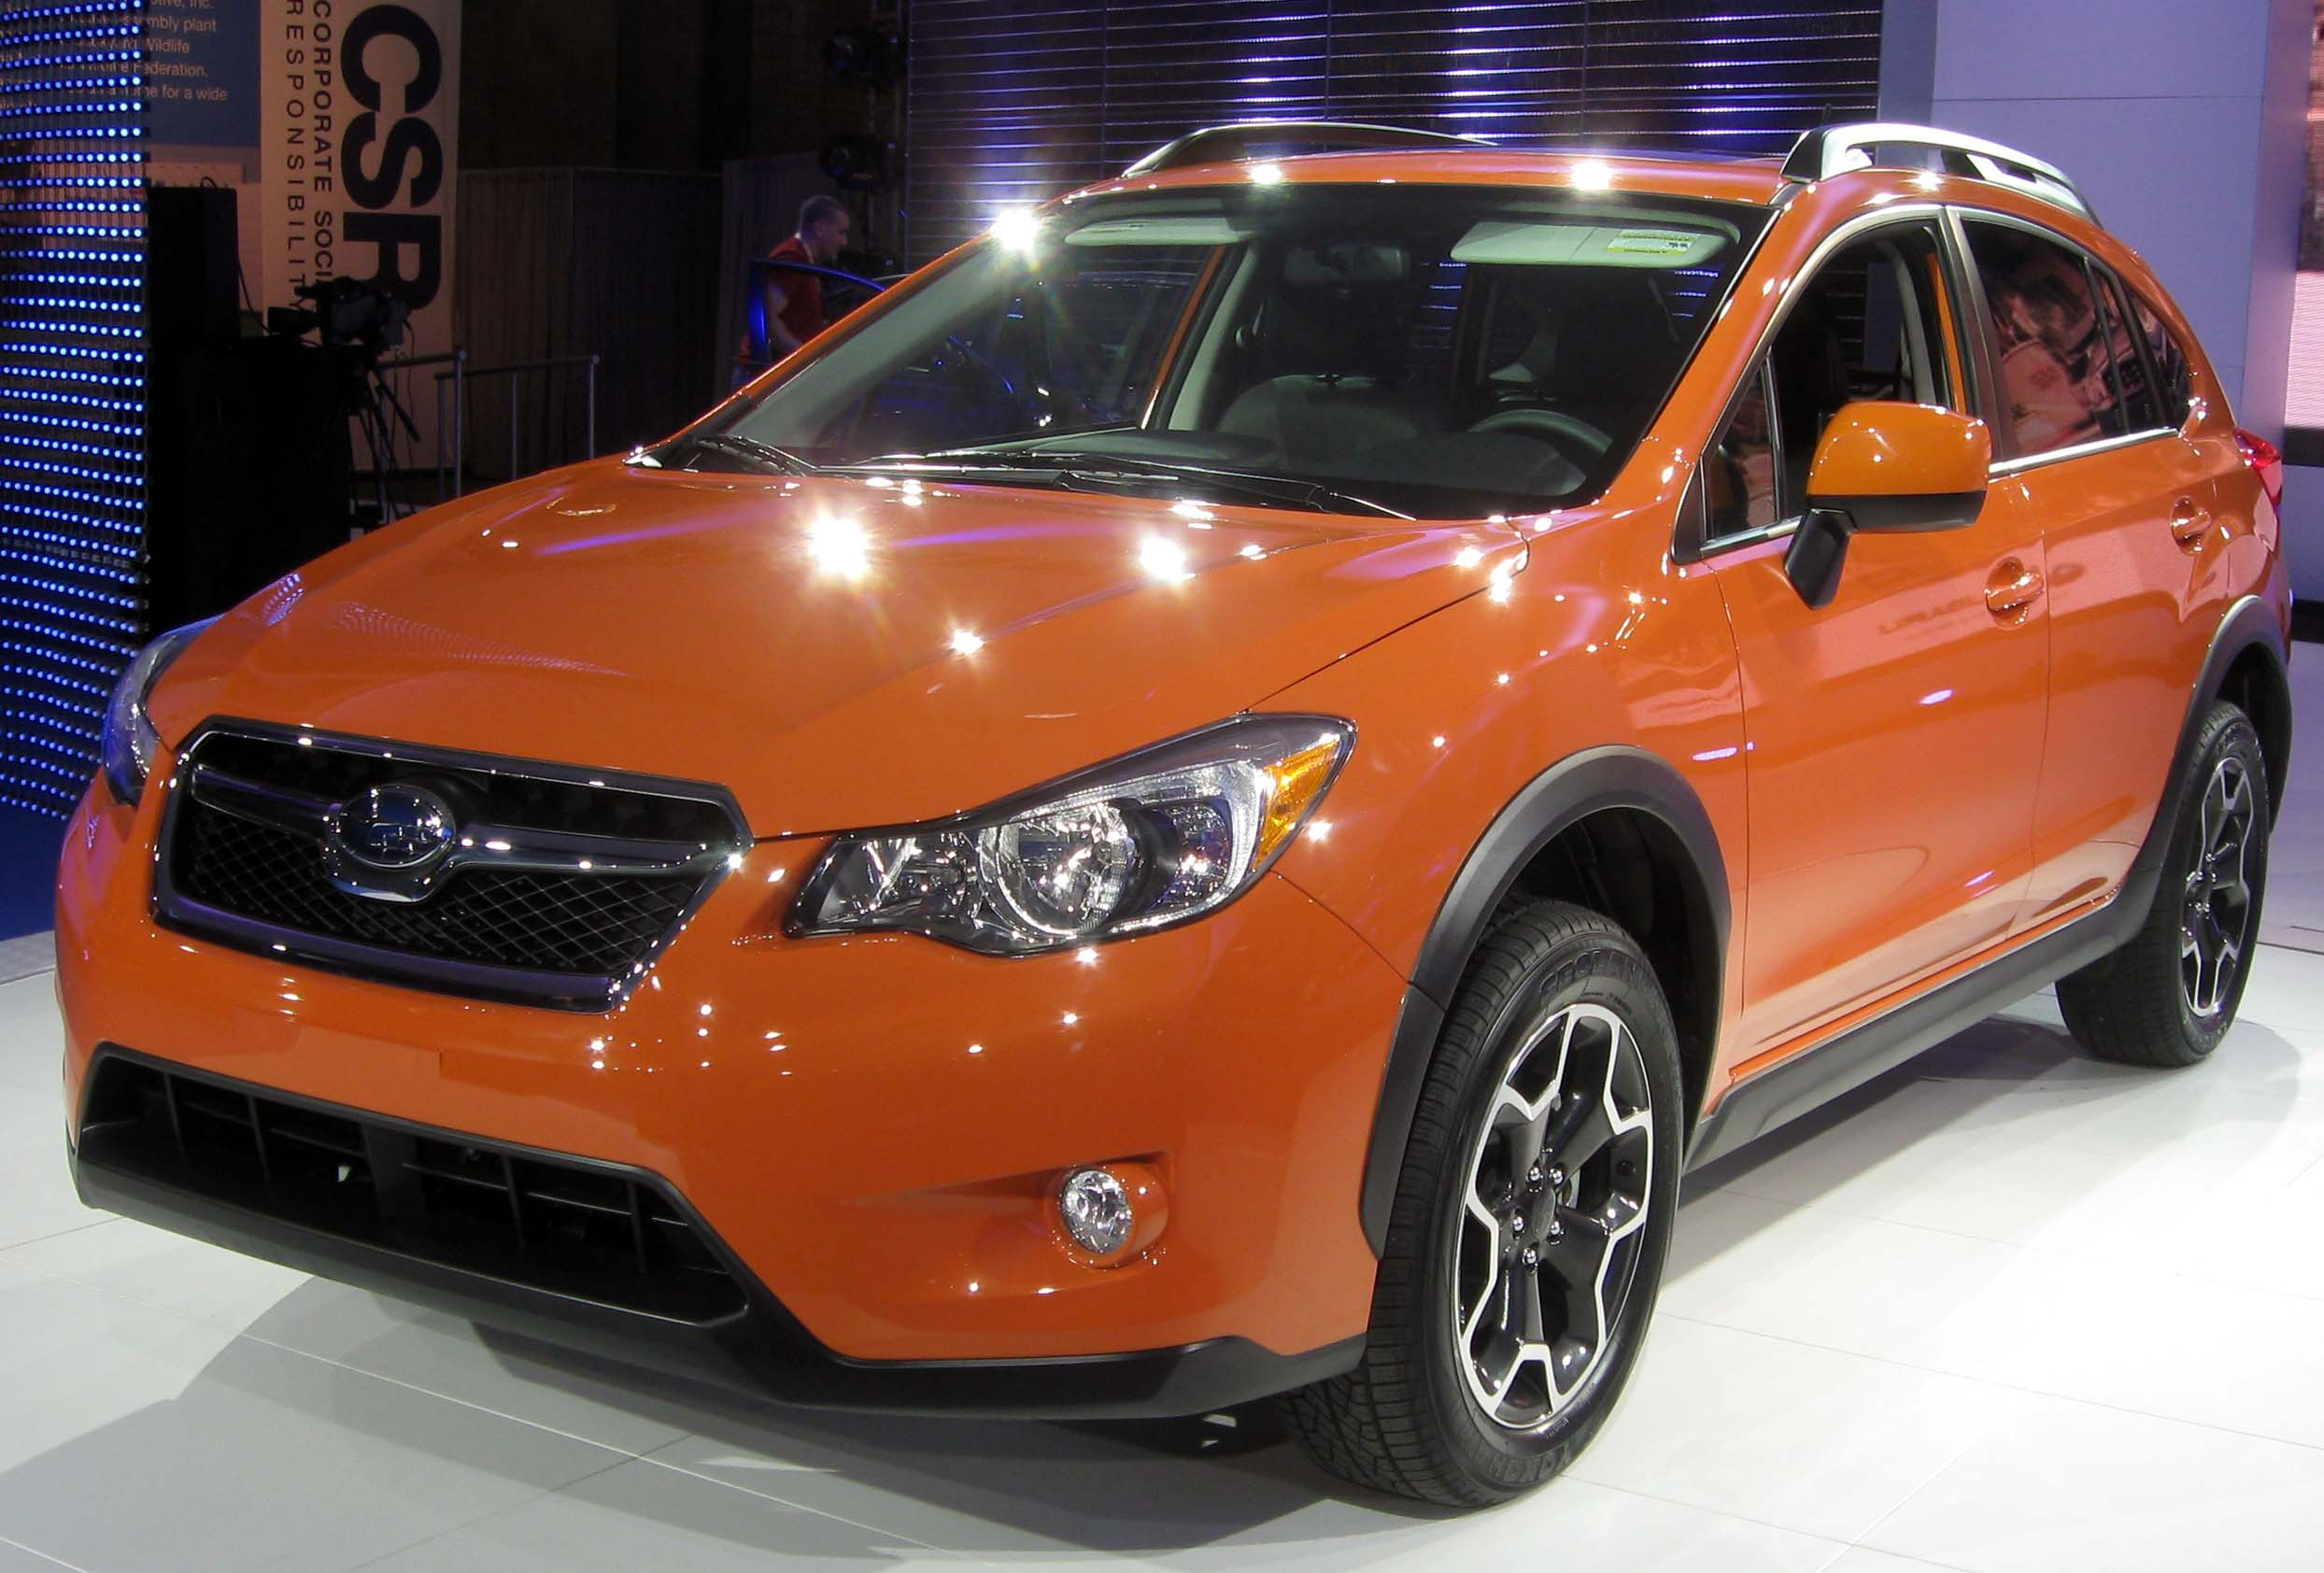 file 2013 subaru xv crosstrek 2012 nyias jpg wikimedia commons. Black Bedroom Furniture Sets. Home Design Ideas